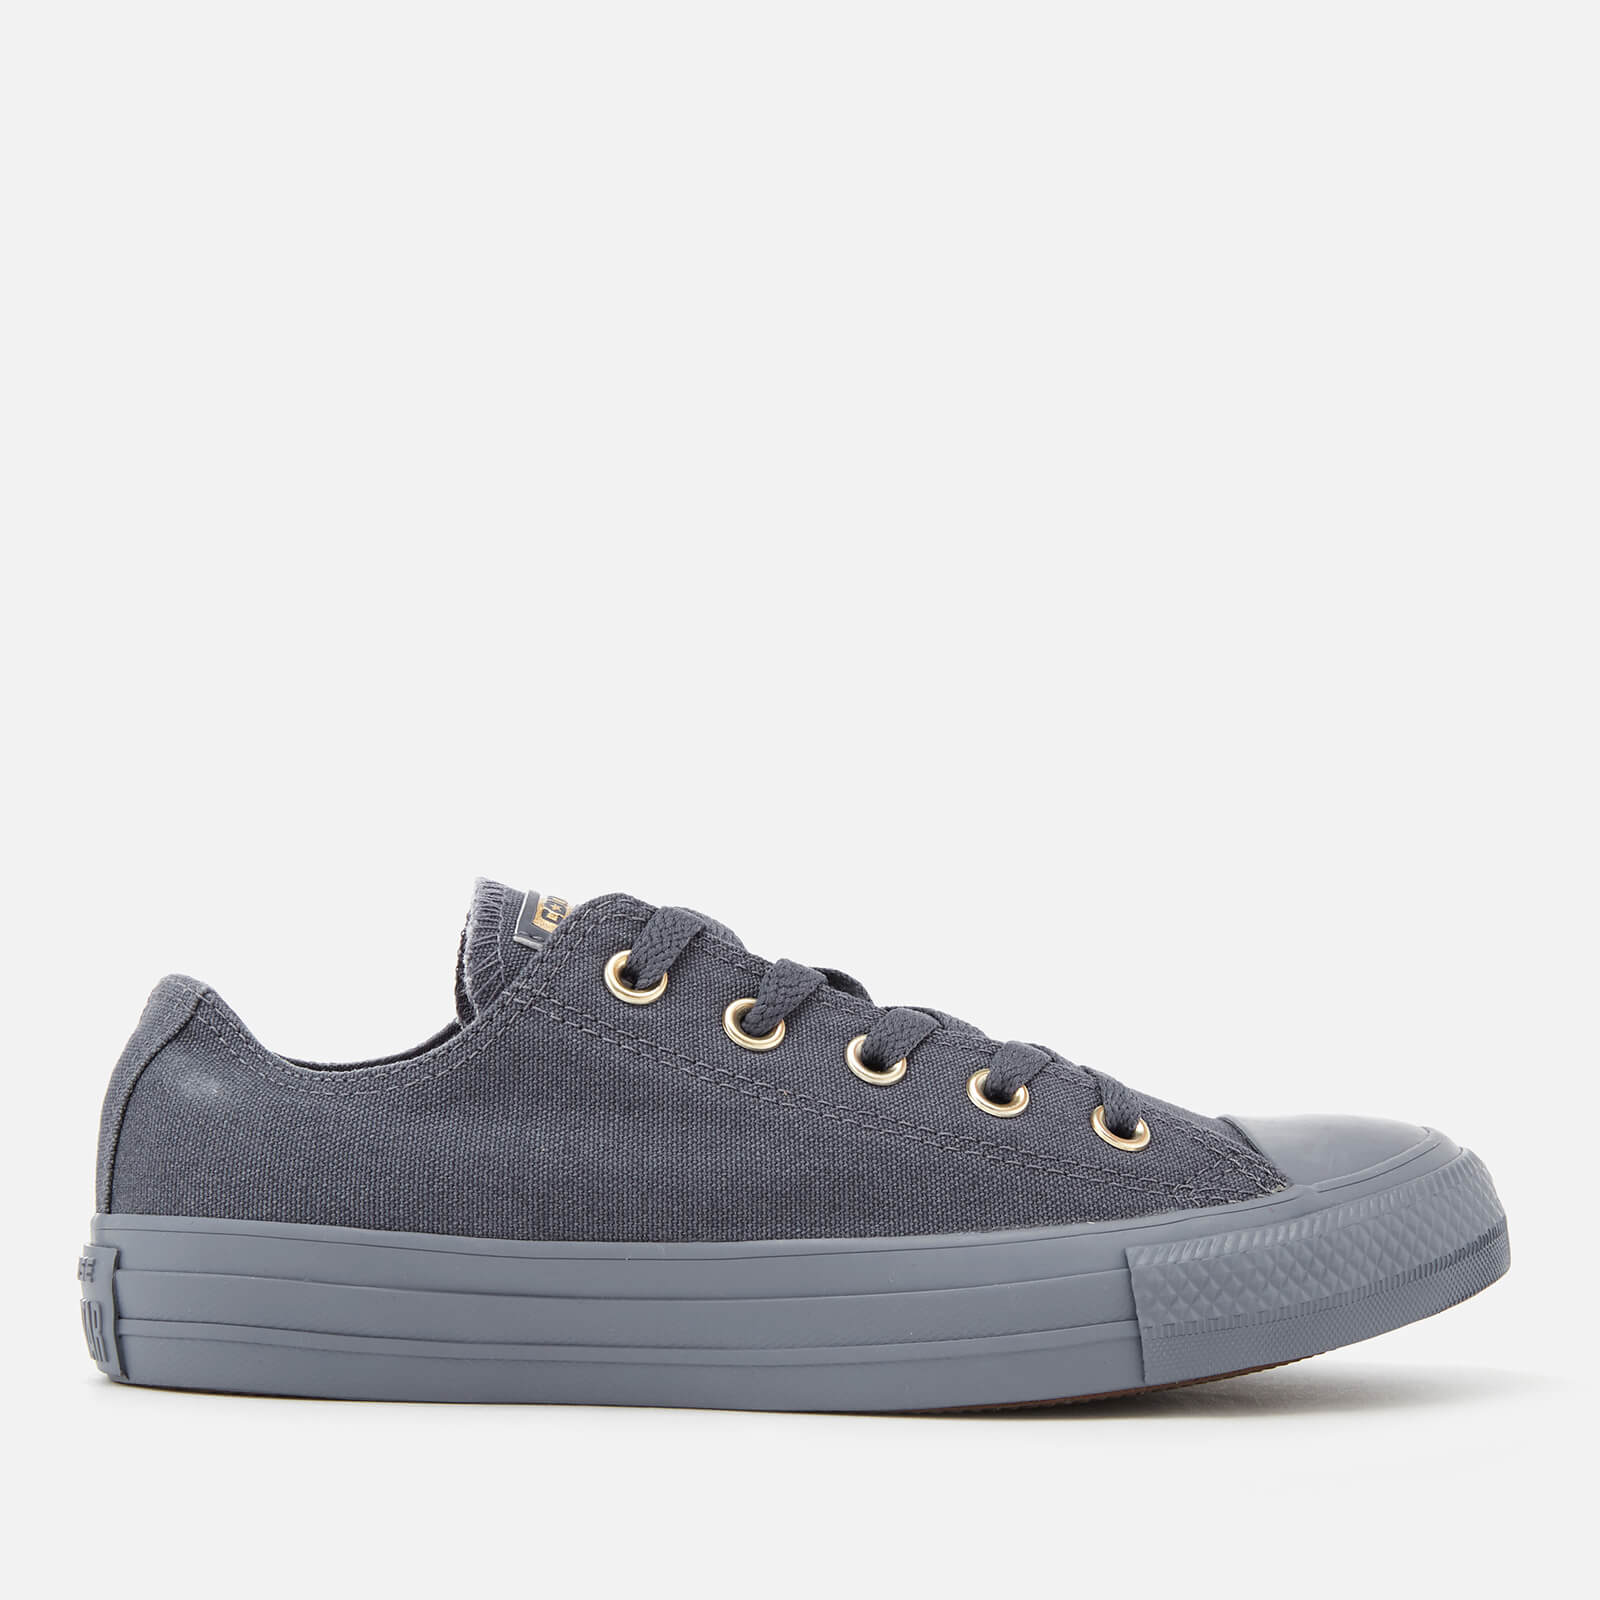 2b6f8249137e Converse Women s Chuck Taylor All Star Ox Trainers - Light Carbon Gold  Womens Footwear